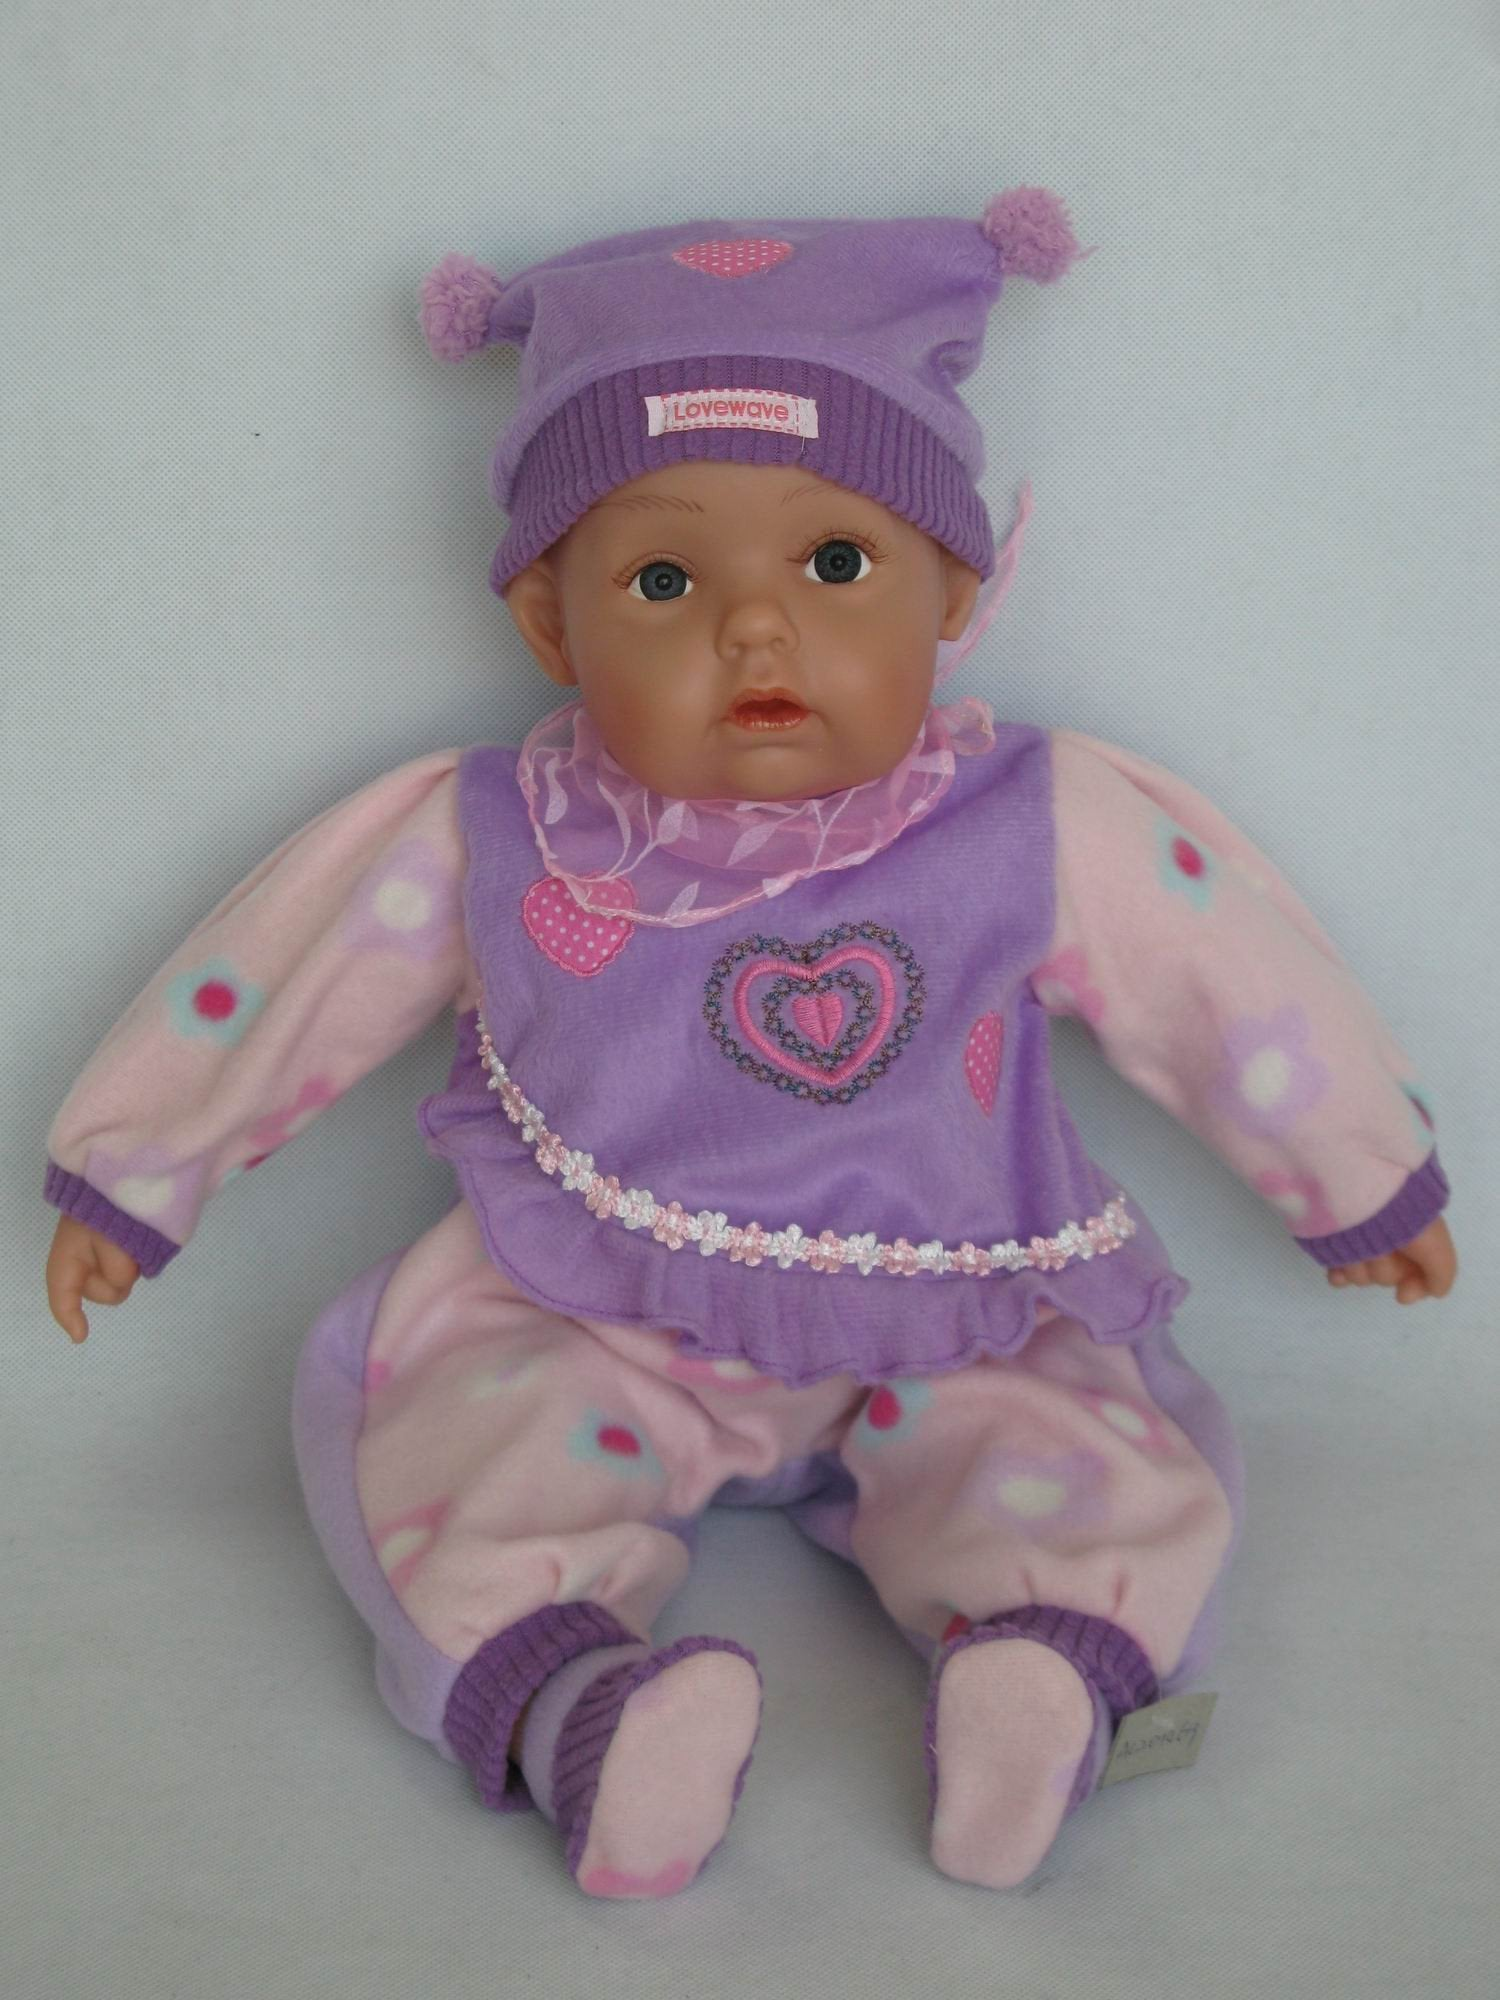 HA319 - Awake Baby Doll: Brooklyn - Tamarr Imports Innovative Giftware Pty Ltd